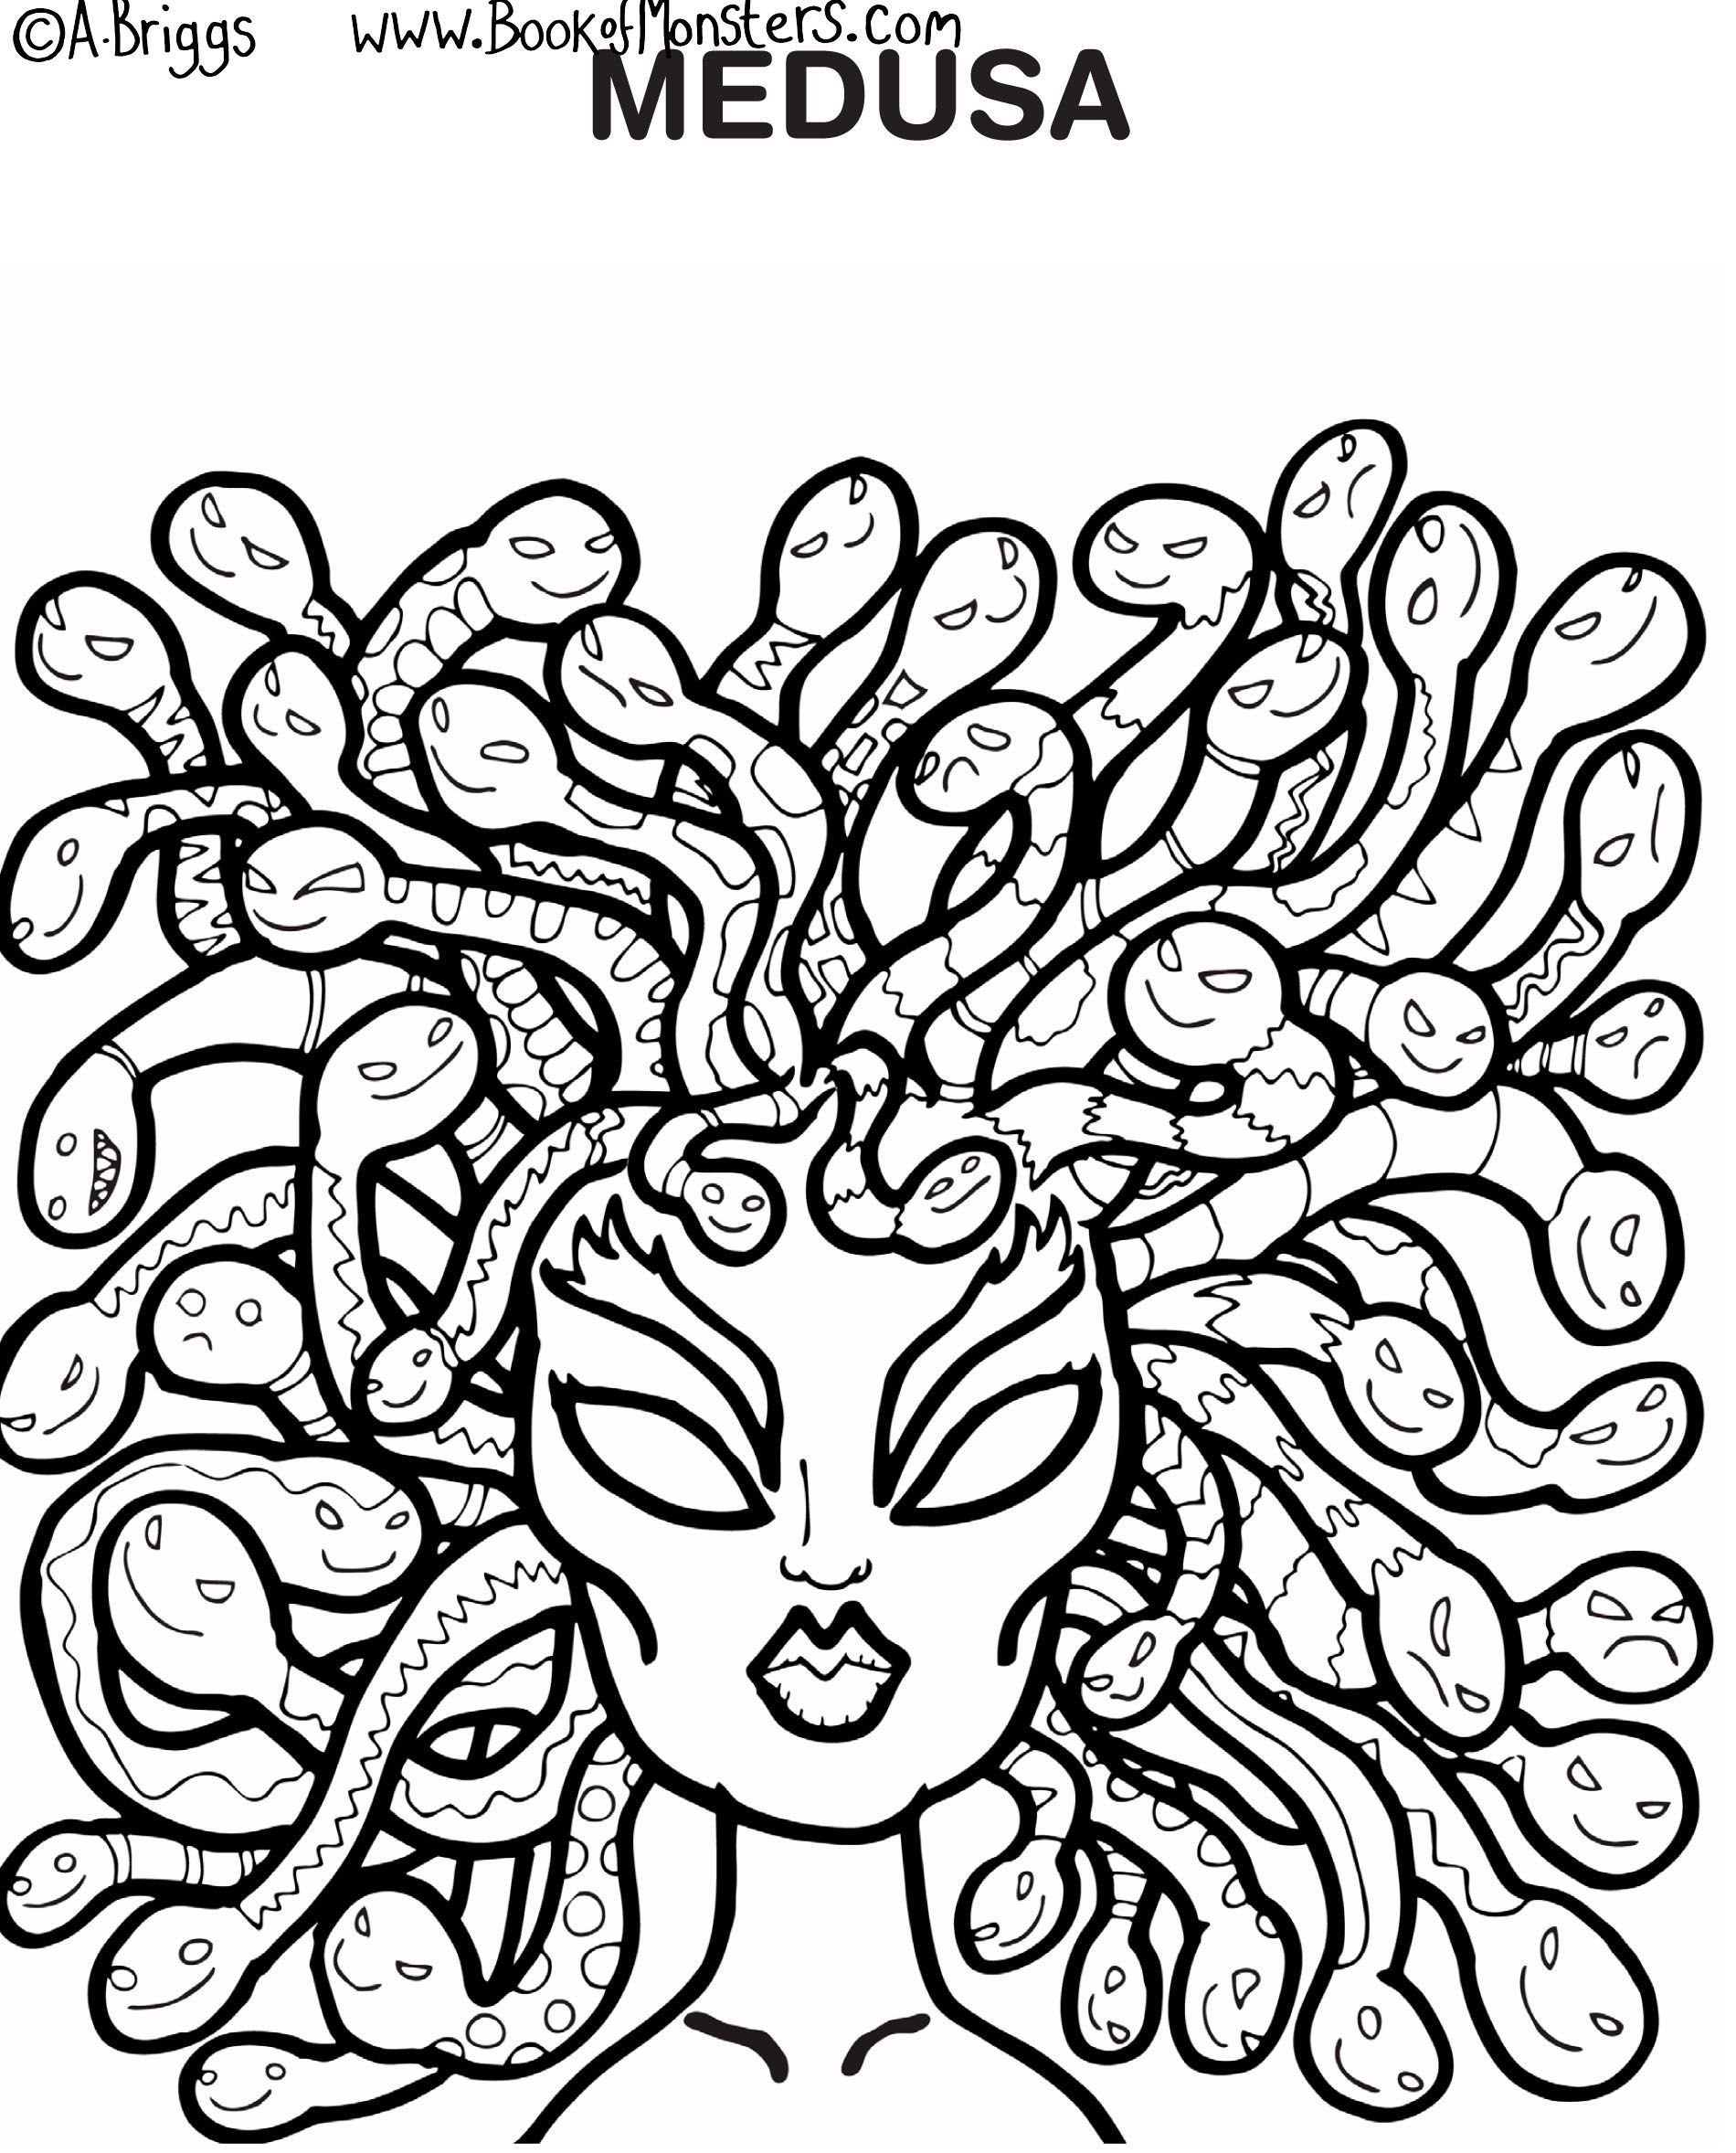 Ancient Greece Coloring Pages Book Of Monsters Ancient Greece Greek Mythology Lessons Greek Monsters In 2021 Ancient Greece Greek Mythology Lessons Ancient Greece Art